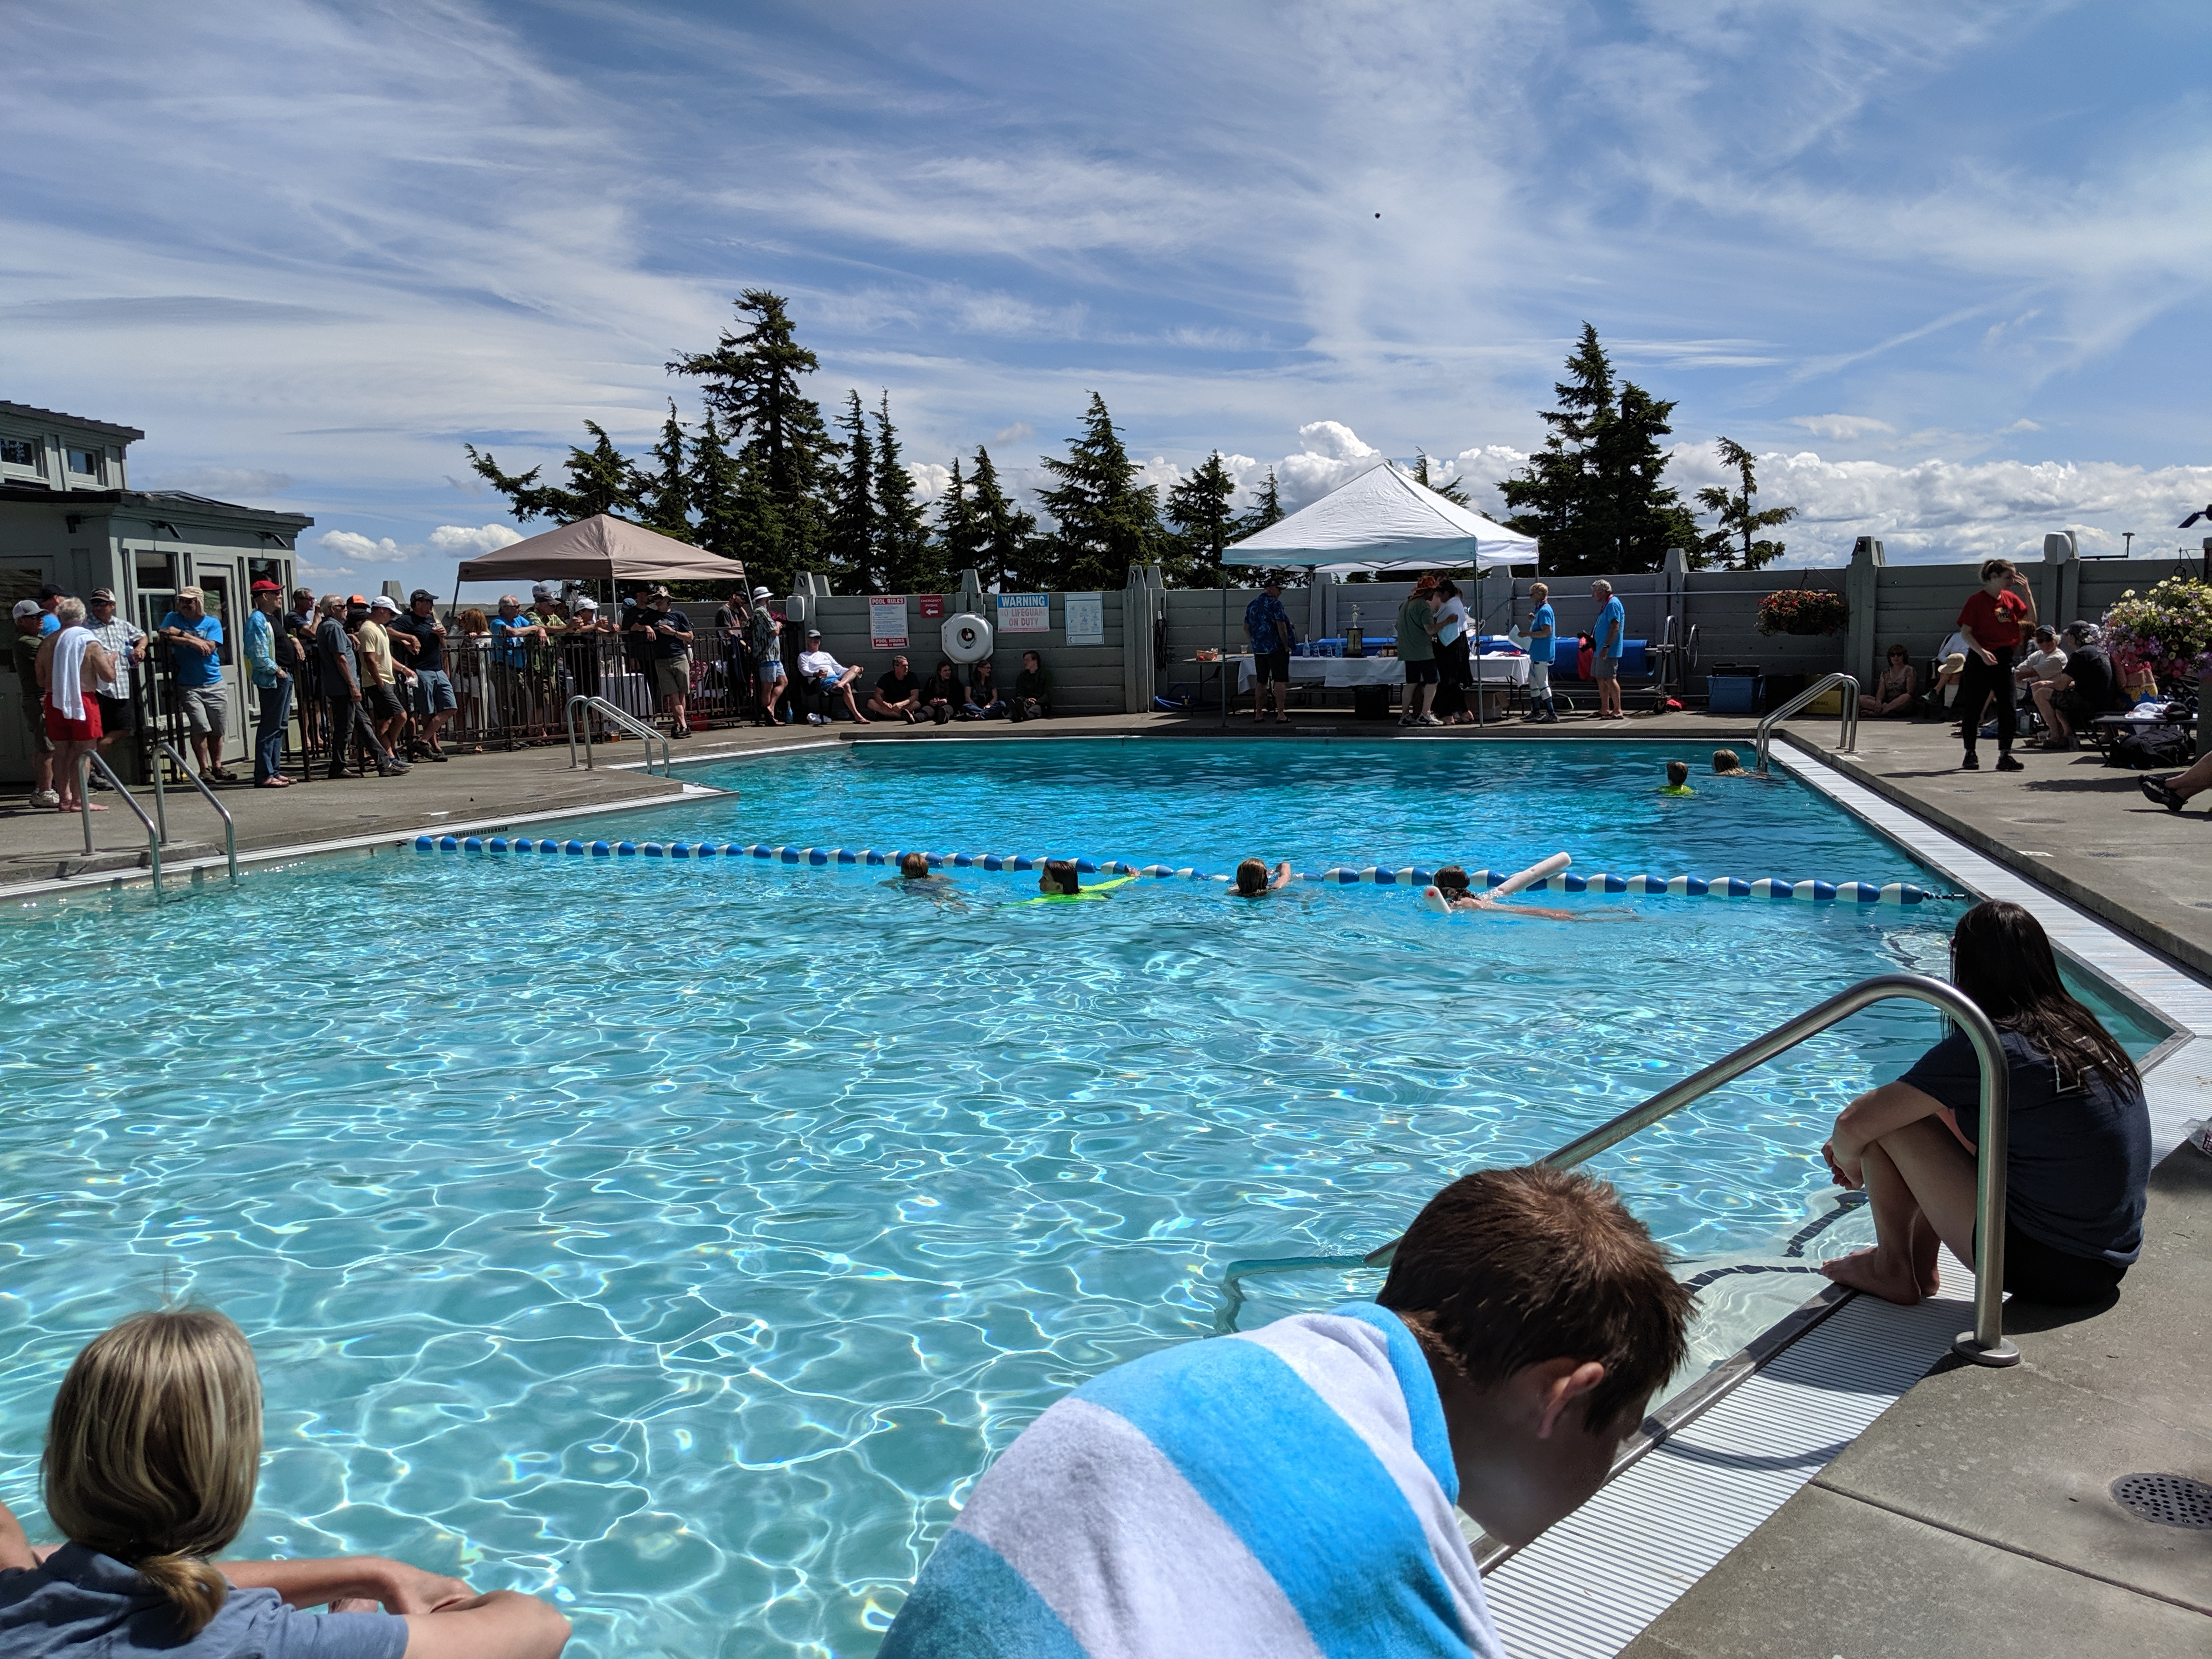 Timberline Lodge Pool Party